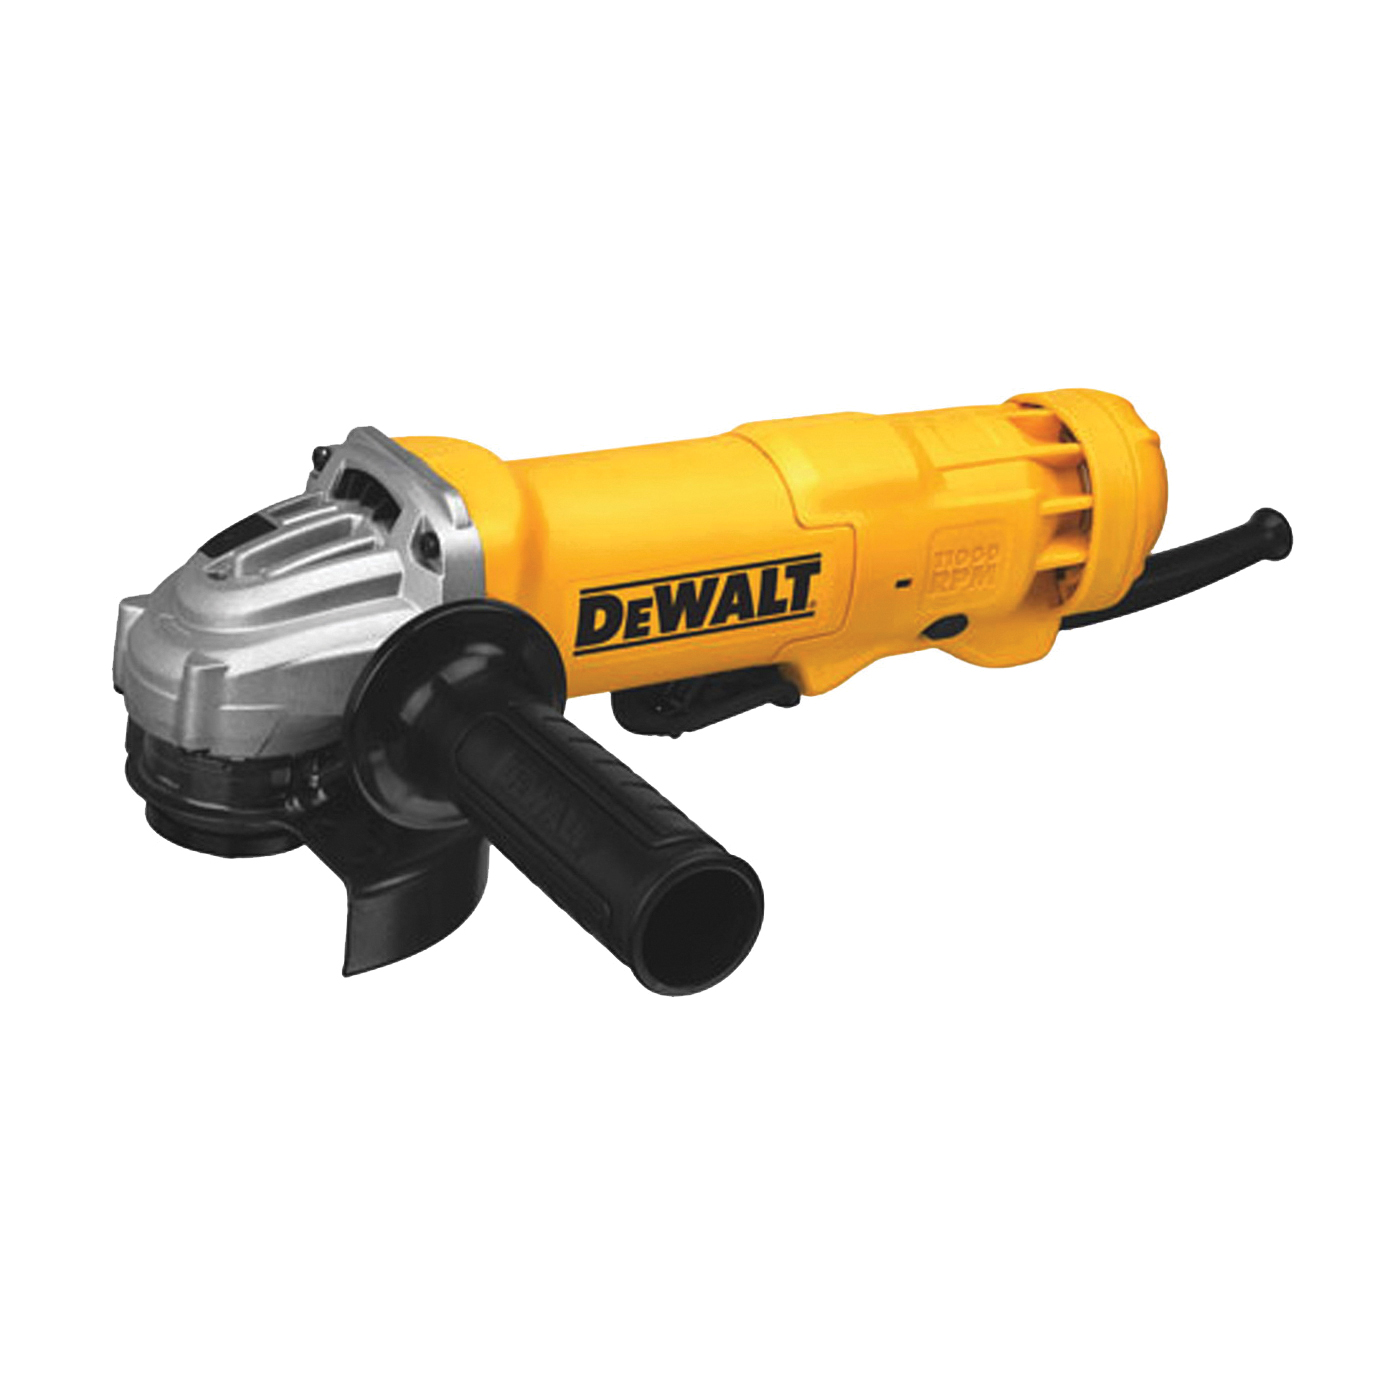 Picture of DeWALT DWE402 Corded Angle Grinder, Bare Tool, 120 V Battery, 5/8-11 Spindle, 4-1/2 in Dia Wheel, 11,000 rpm Speed